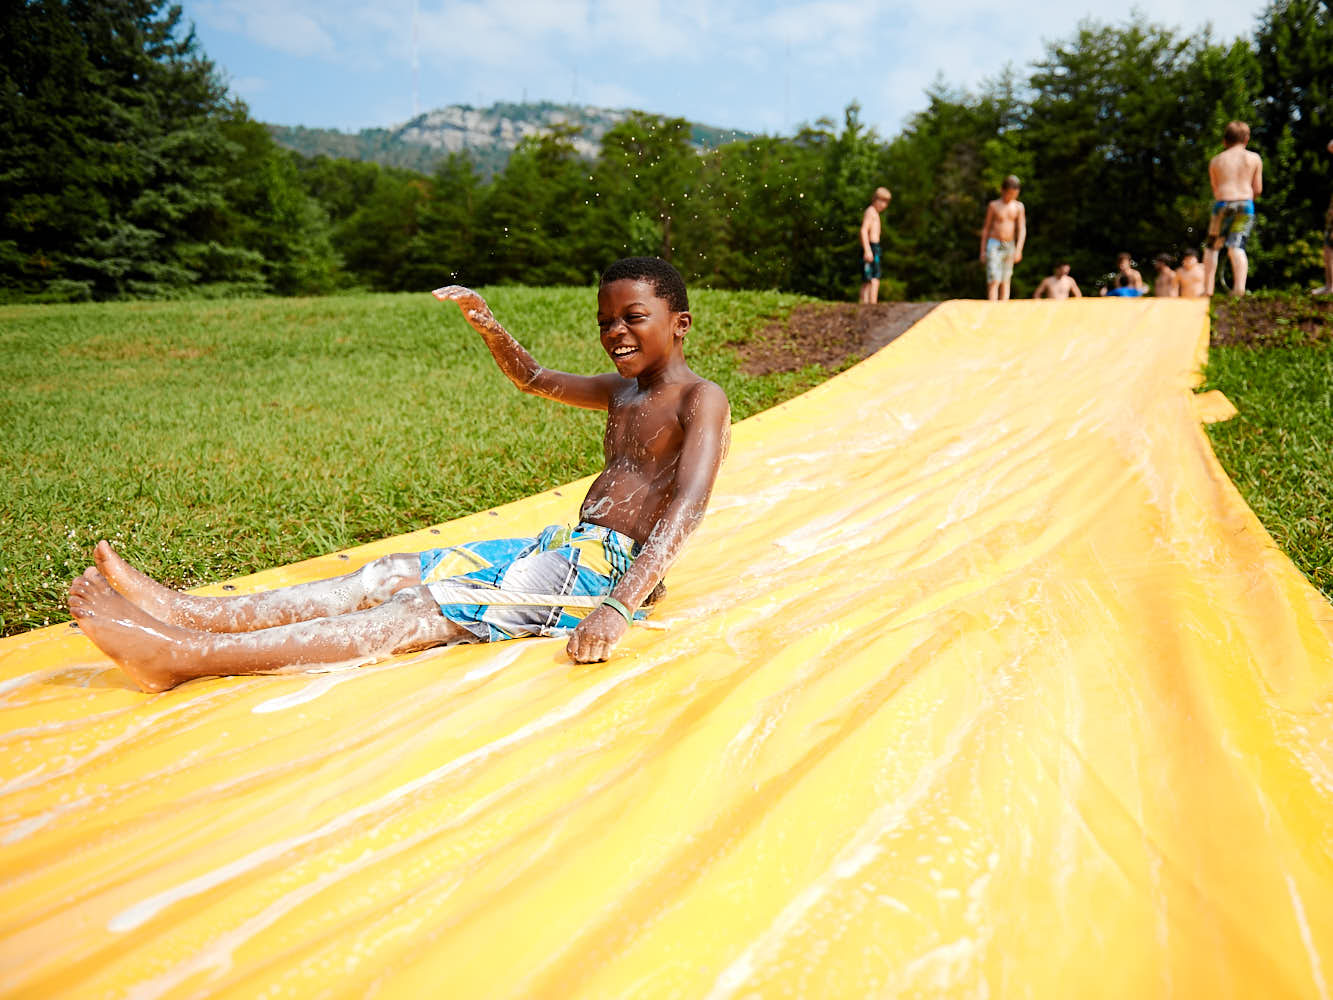 Cabin 10 Slip -n- Slide at YMCA Camp Hanes